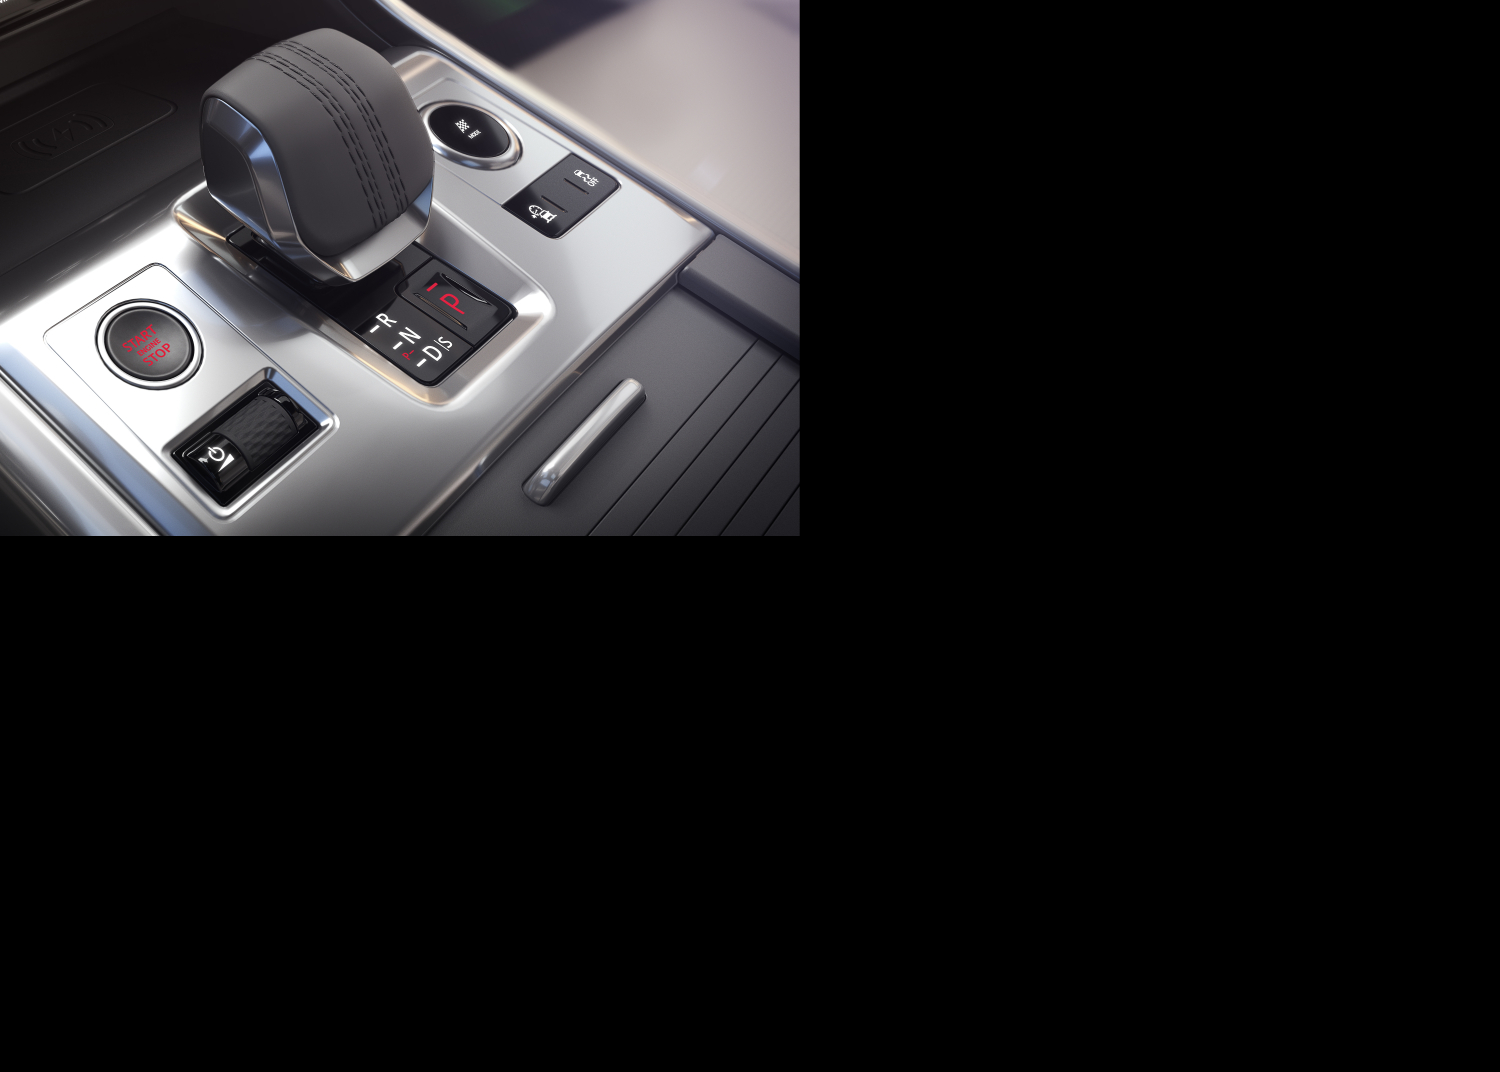 New Jaguar Xf: Beautiful, Luxurious, Connected - Image 4